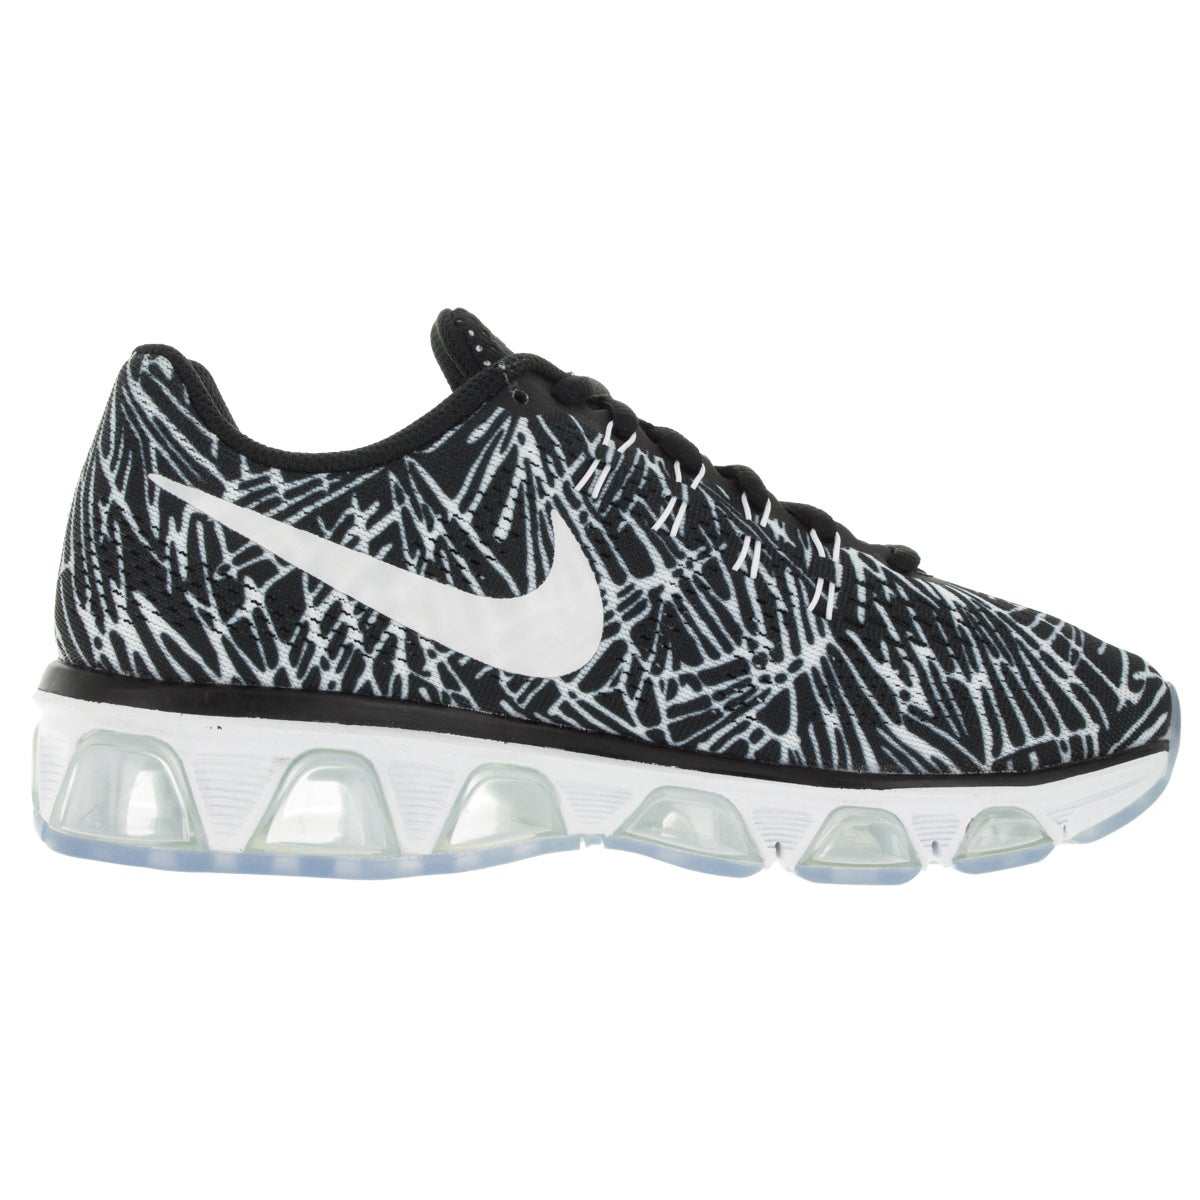 01d011a197 ... purchase shop nike womens air max tailwind 8 black white running shoe  free shipping today overstock